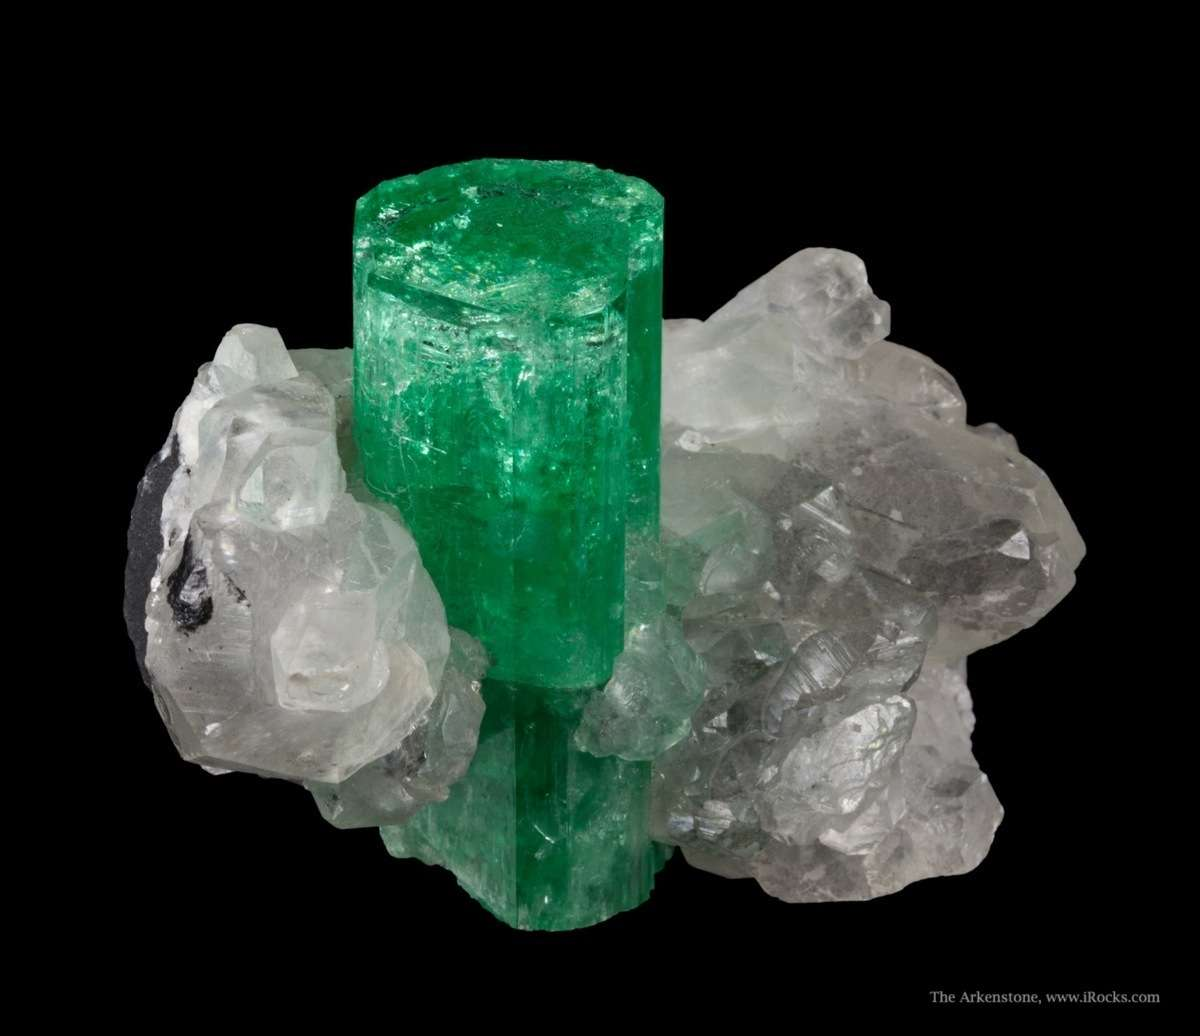 crystal colombia price article arkenstone stone value gemstone img and emerald jewelry information